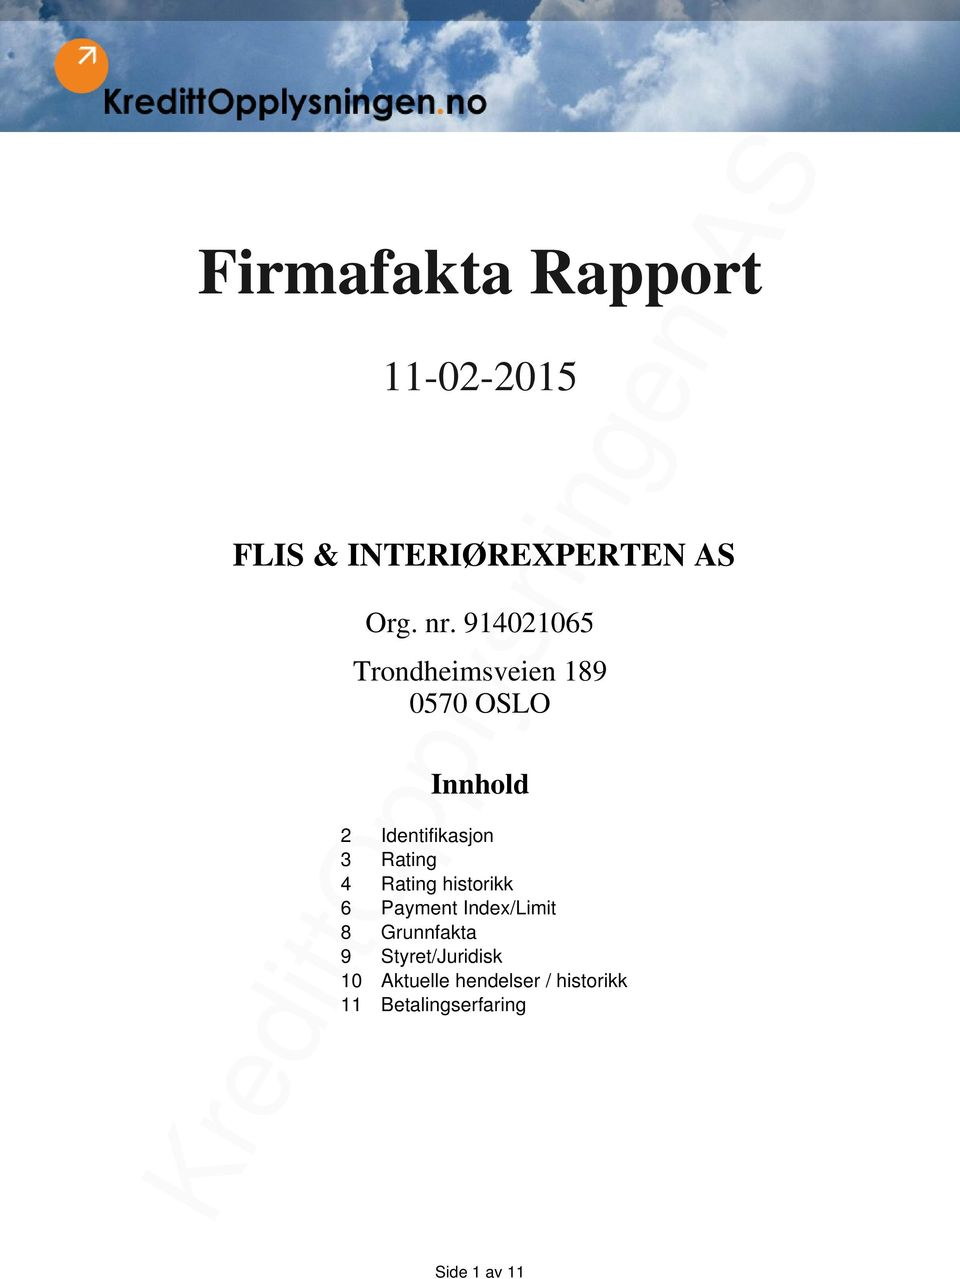 Rating 4 Rating historikk 6 Payment Index/Limit 8 Grunnfakta 9